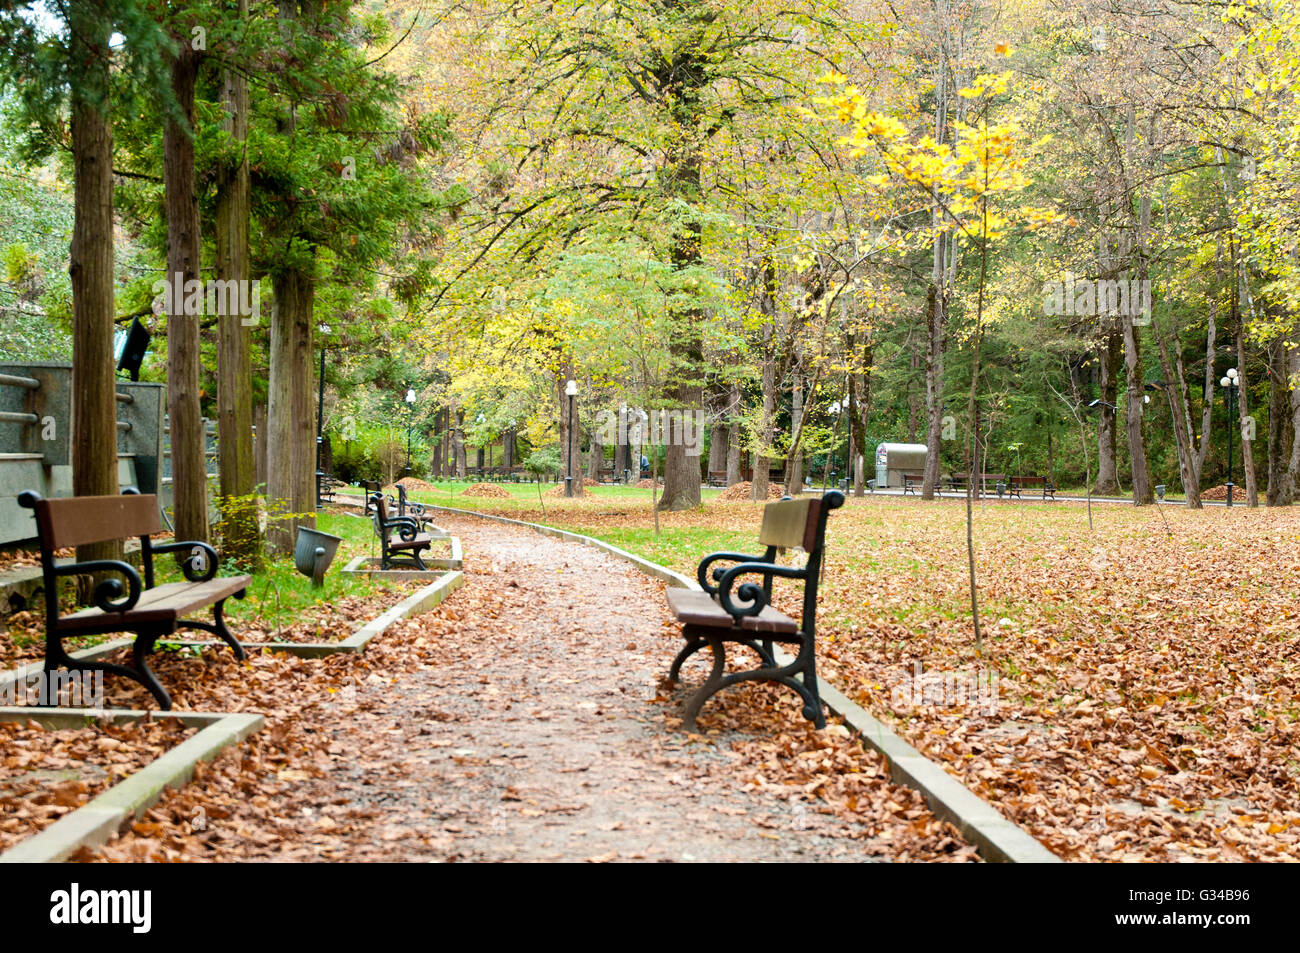 rote bl tter fallen und gelbe bank wald im park borjomi georgien stockfoto bild 105202866 alamy. Black Bedroom Furniture Sets. Home Design Ideas